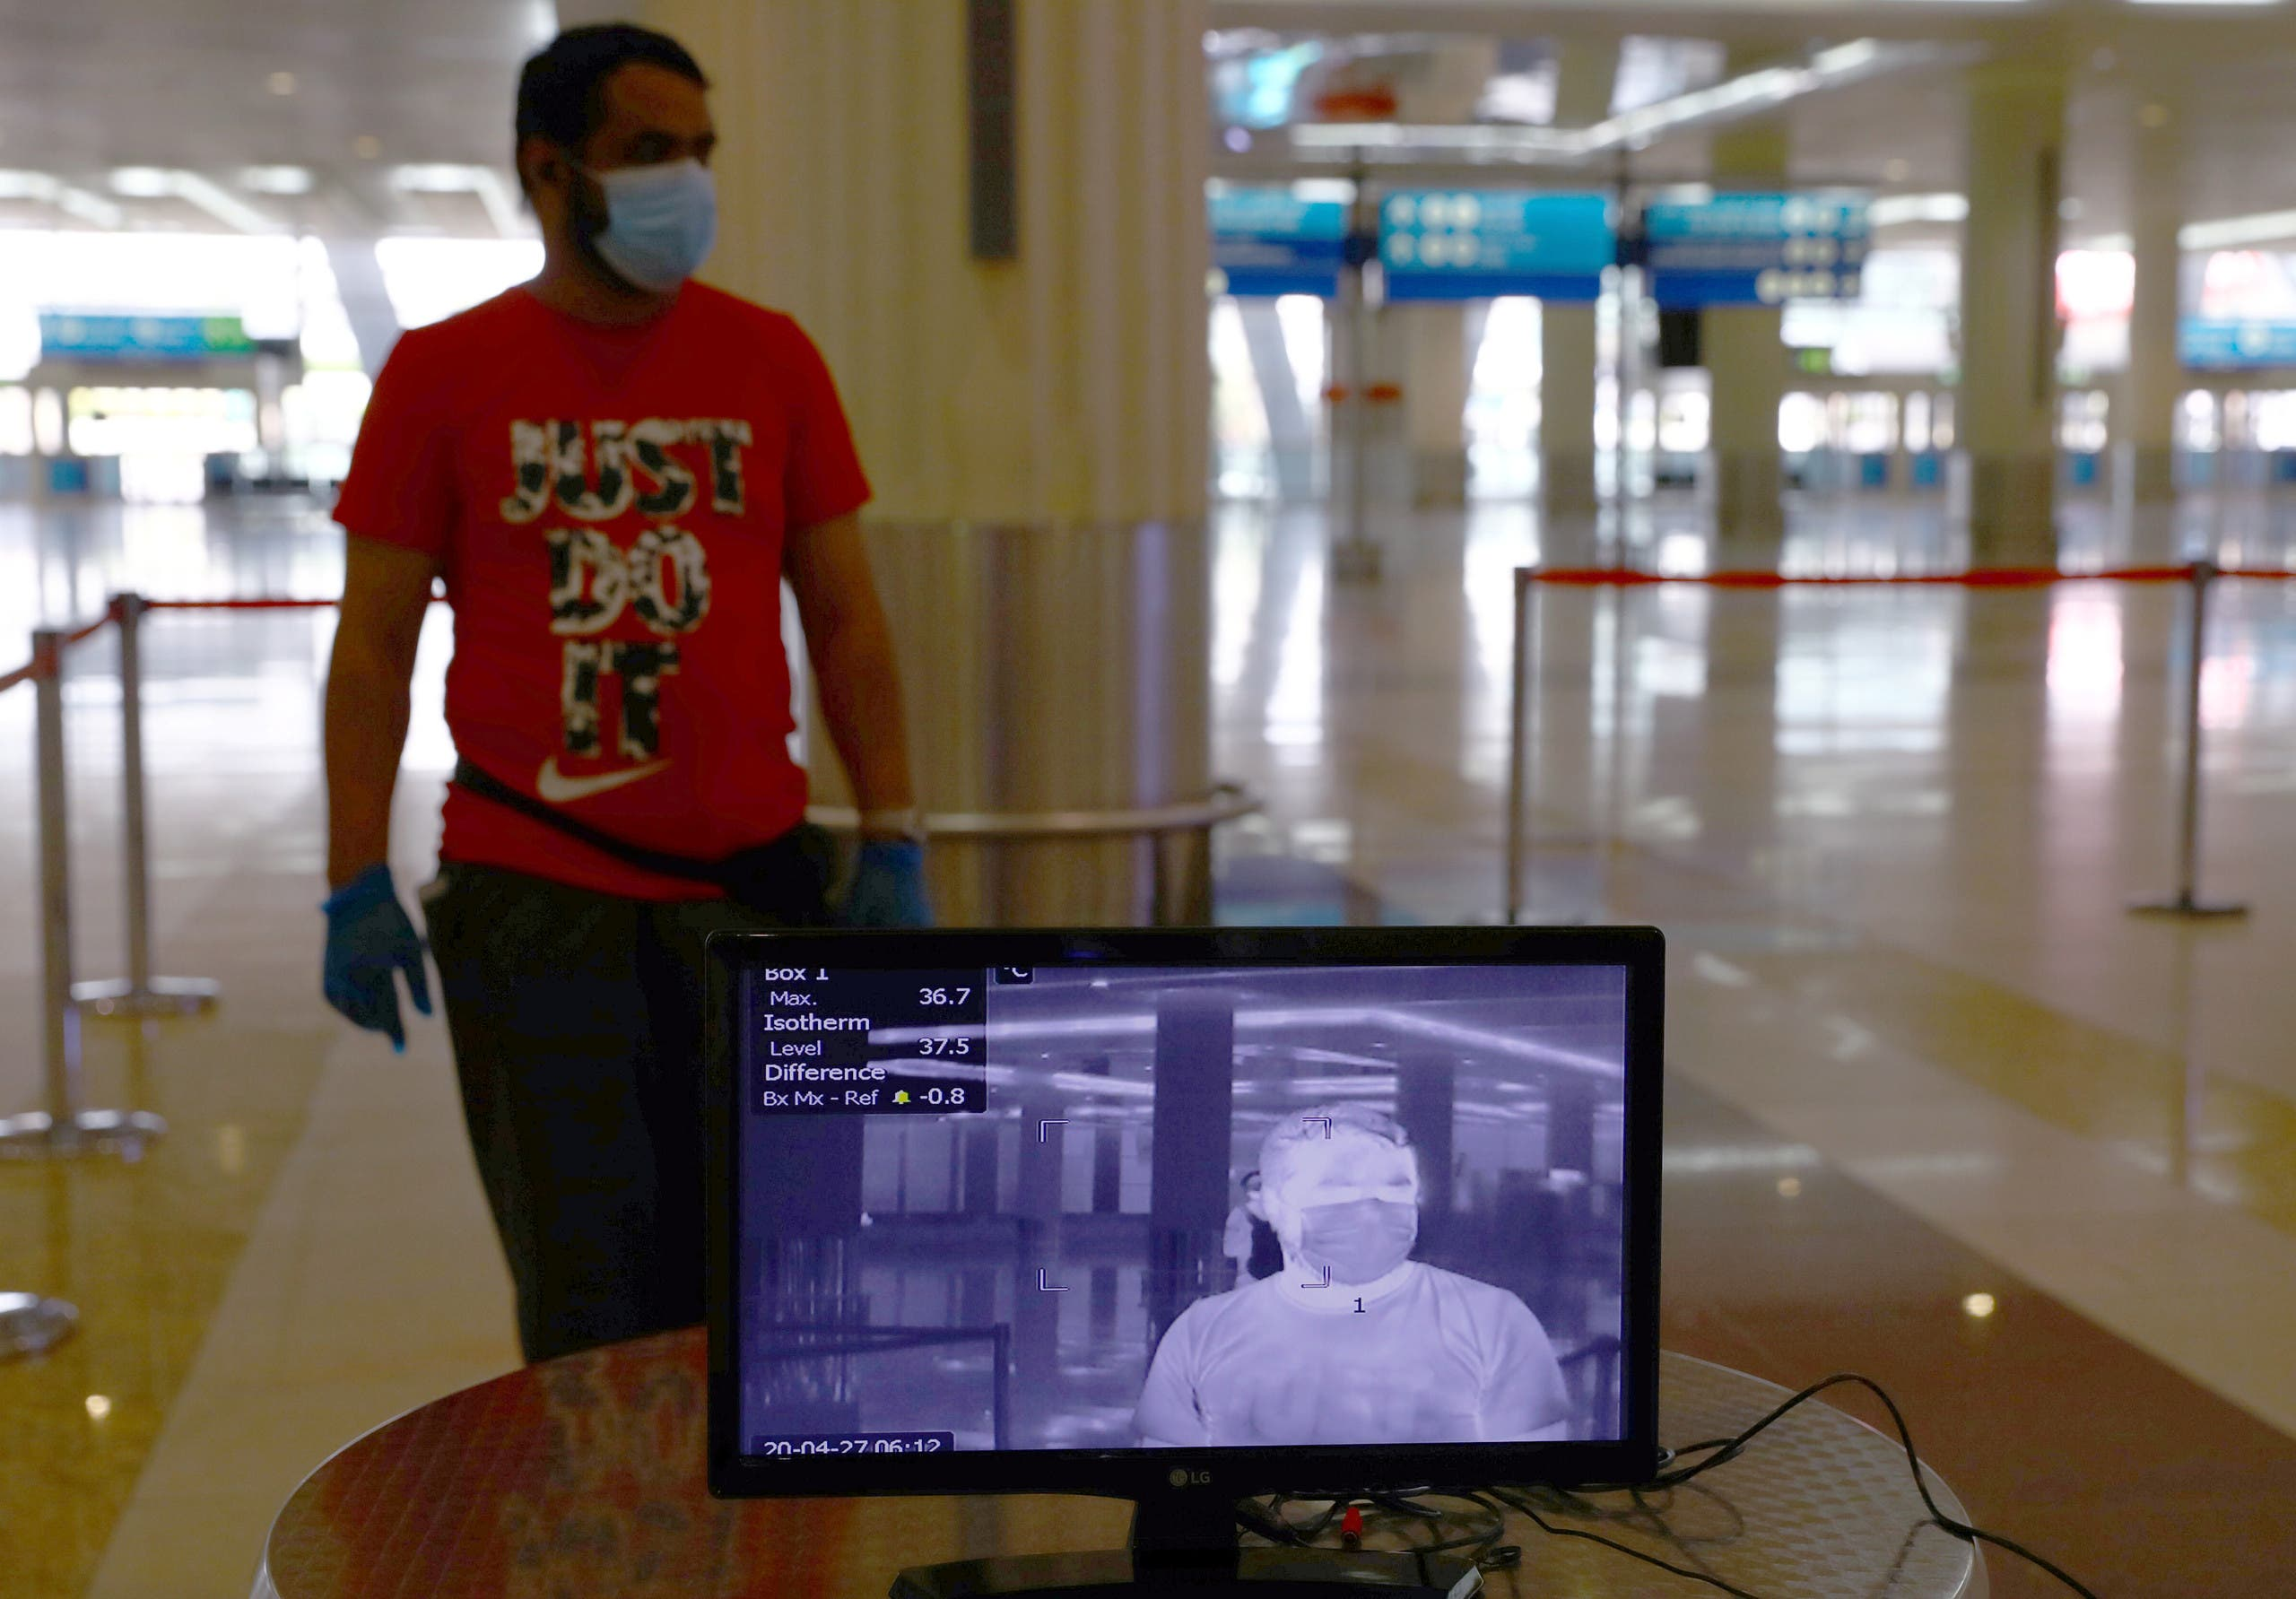 A man is seen through a thermal camera at Dubai International Airport amid the outbreak of the coronavirus disease (COVID-19) in Dubai, UAE April 27, 2020. Picture taken April 27, 2020. (Reuters)